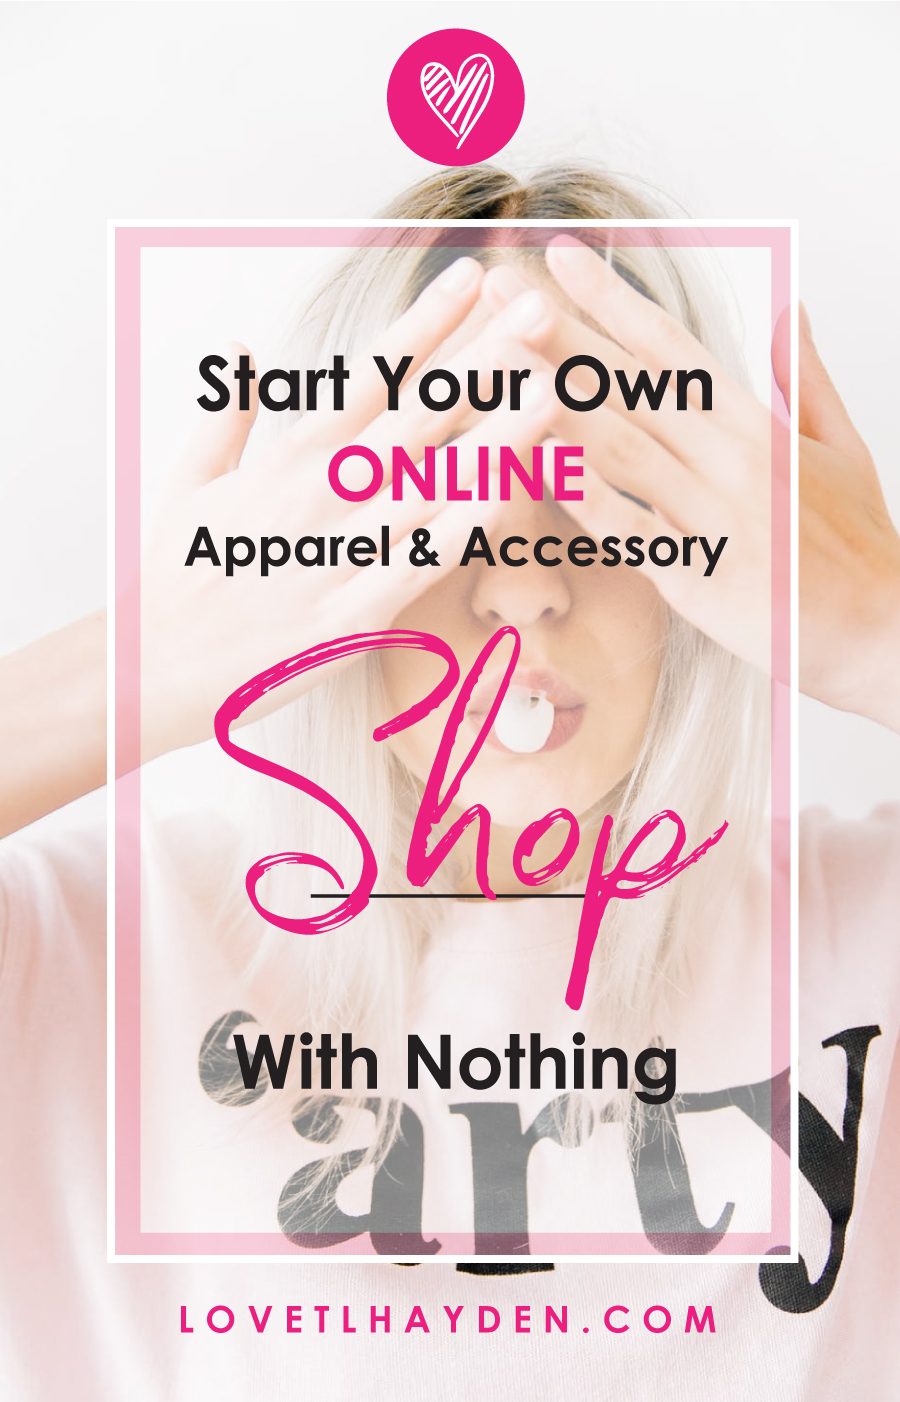 START YOUR OWN ONLINE APPAREL AND ACCESSORY SHOP WITH NOTHING